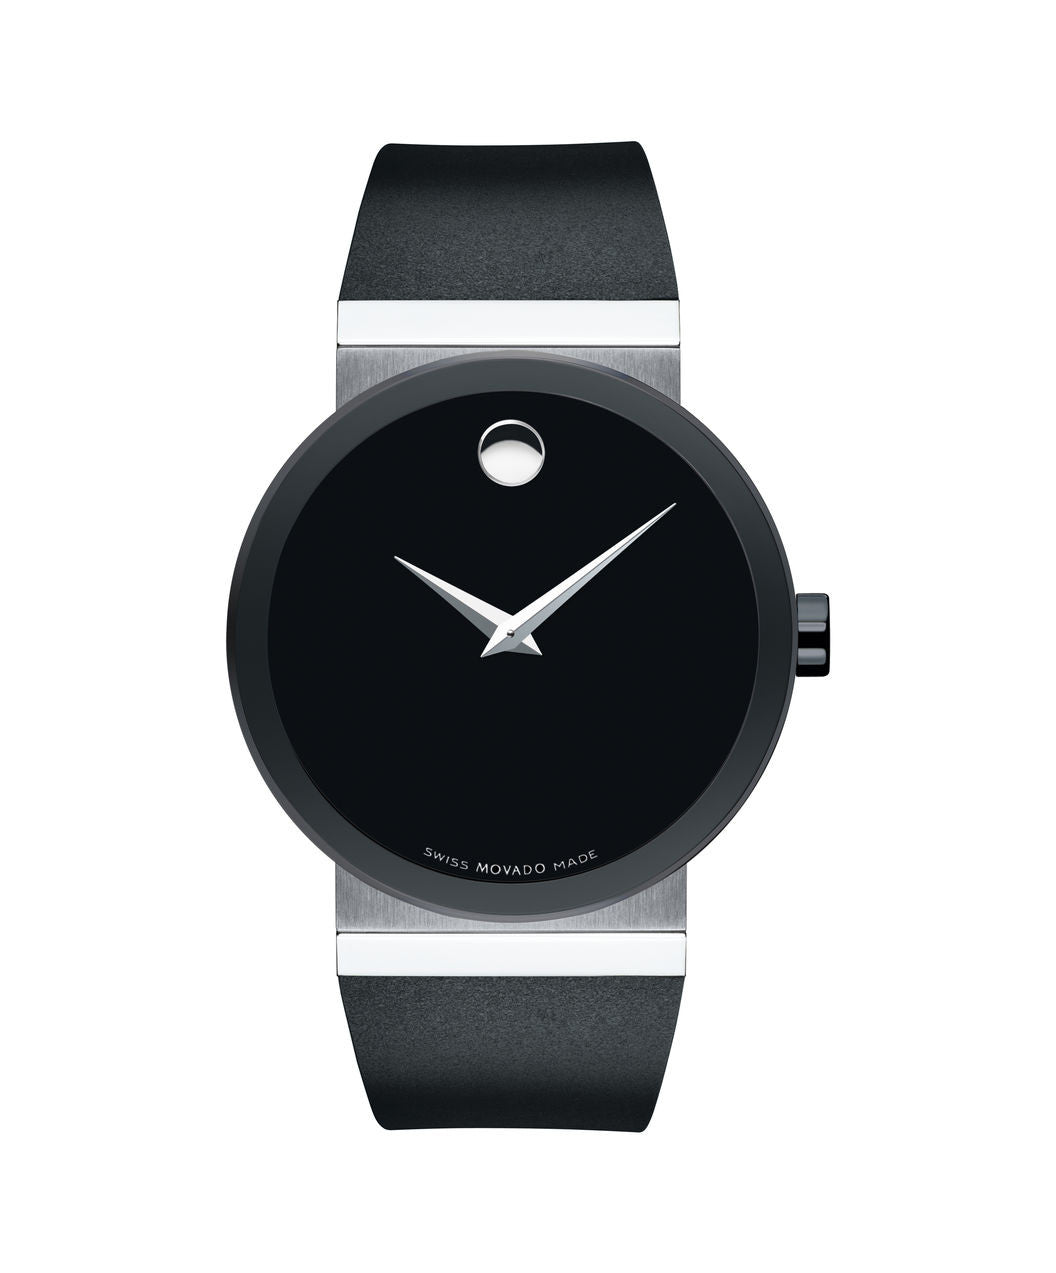 Movado Men's Sapphire Synergy Watch, 42 mm Black PVD-Finished and Stainless Steel Bezel-Free 0606780 - Arnik Jewellers